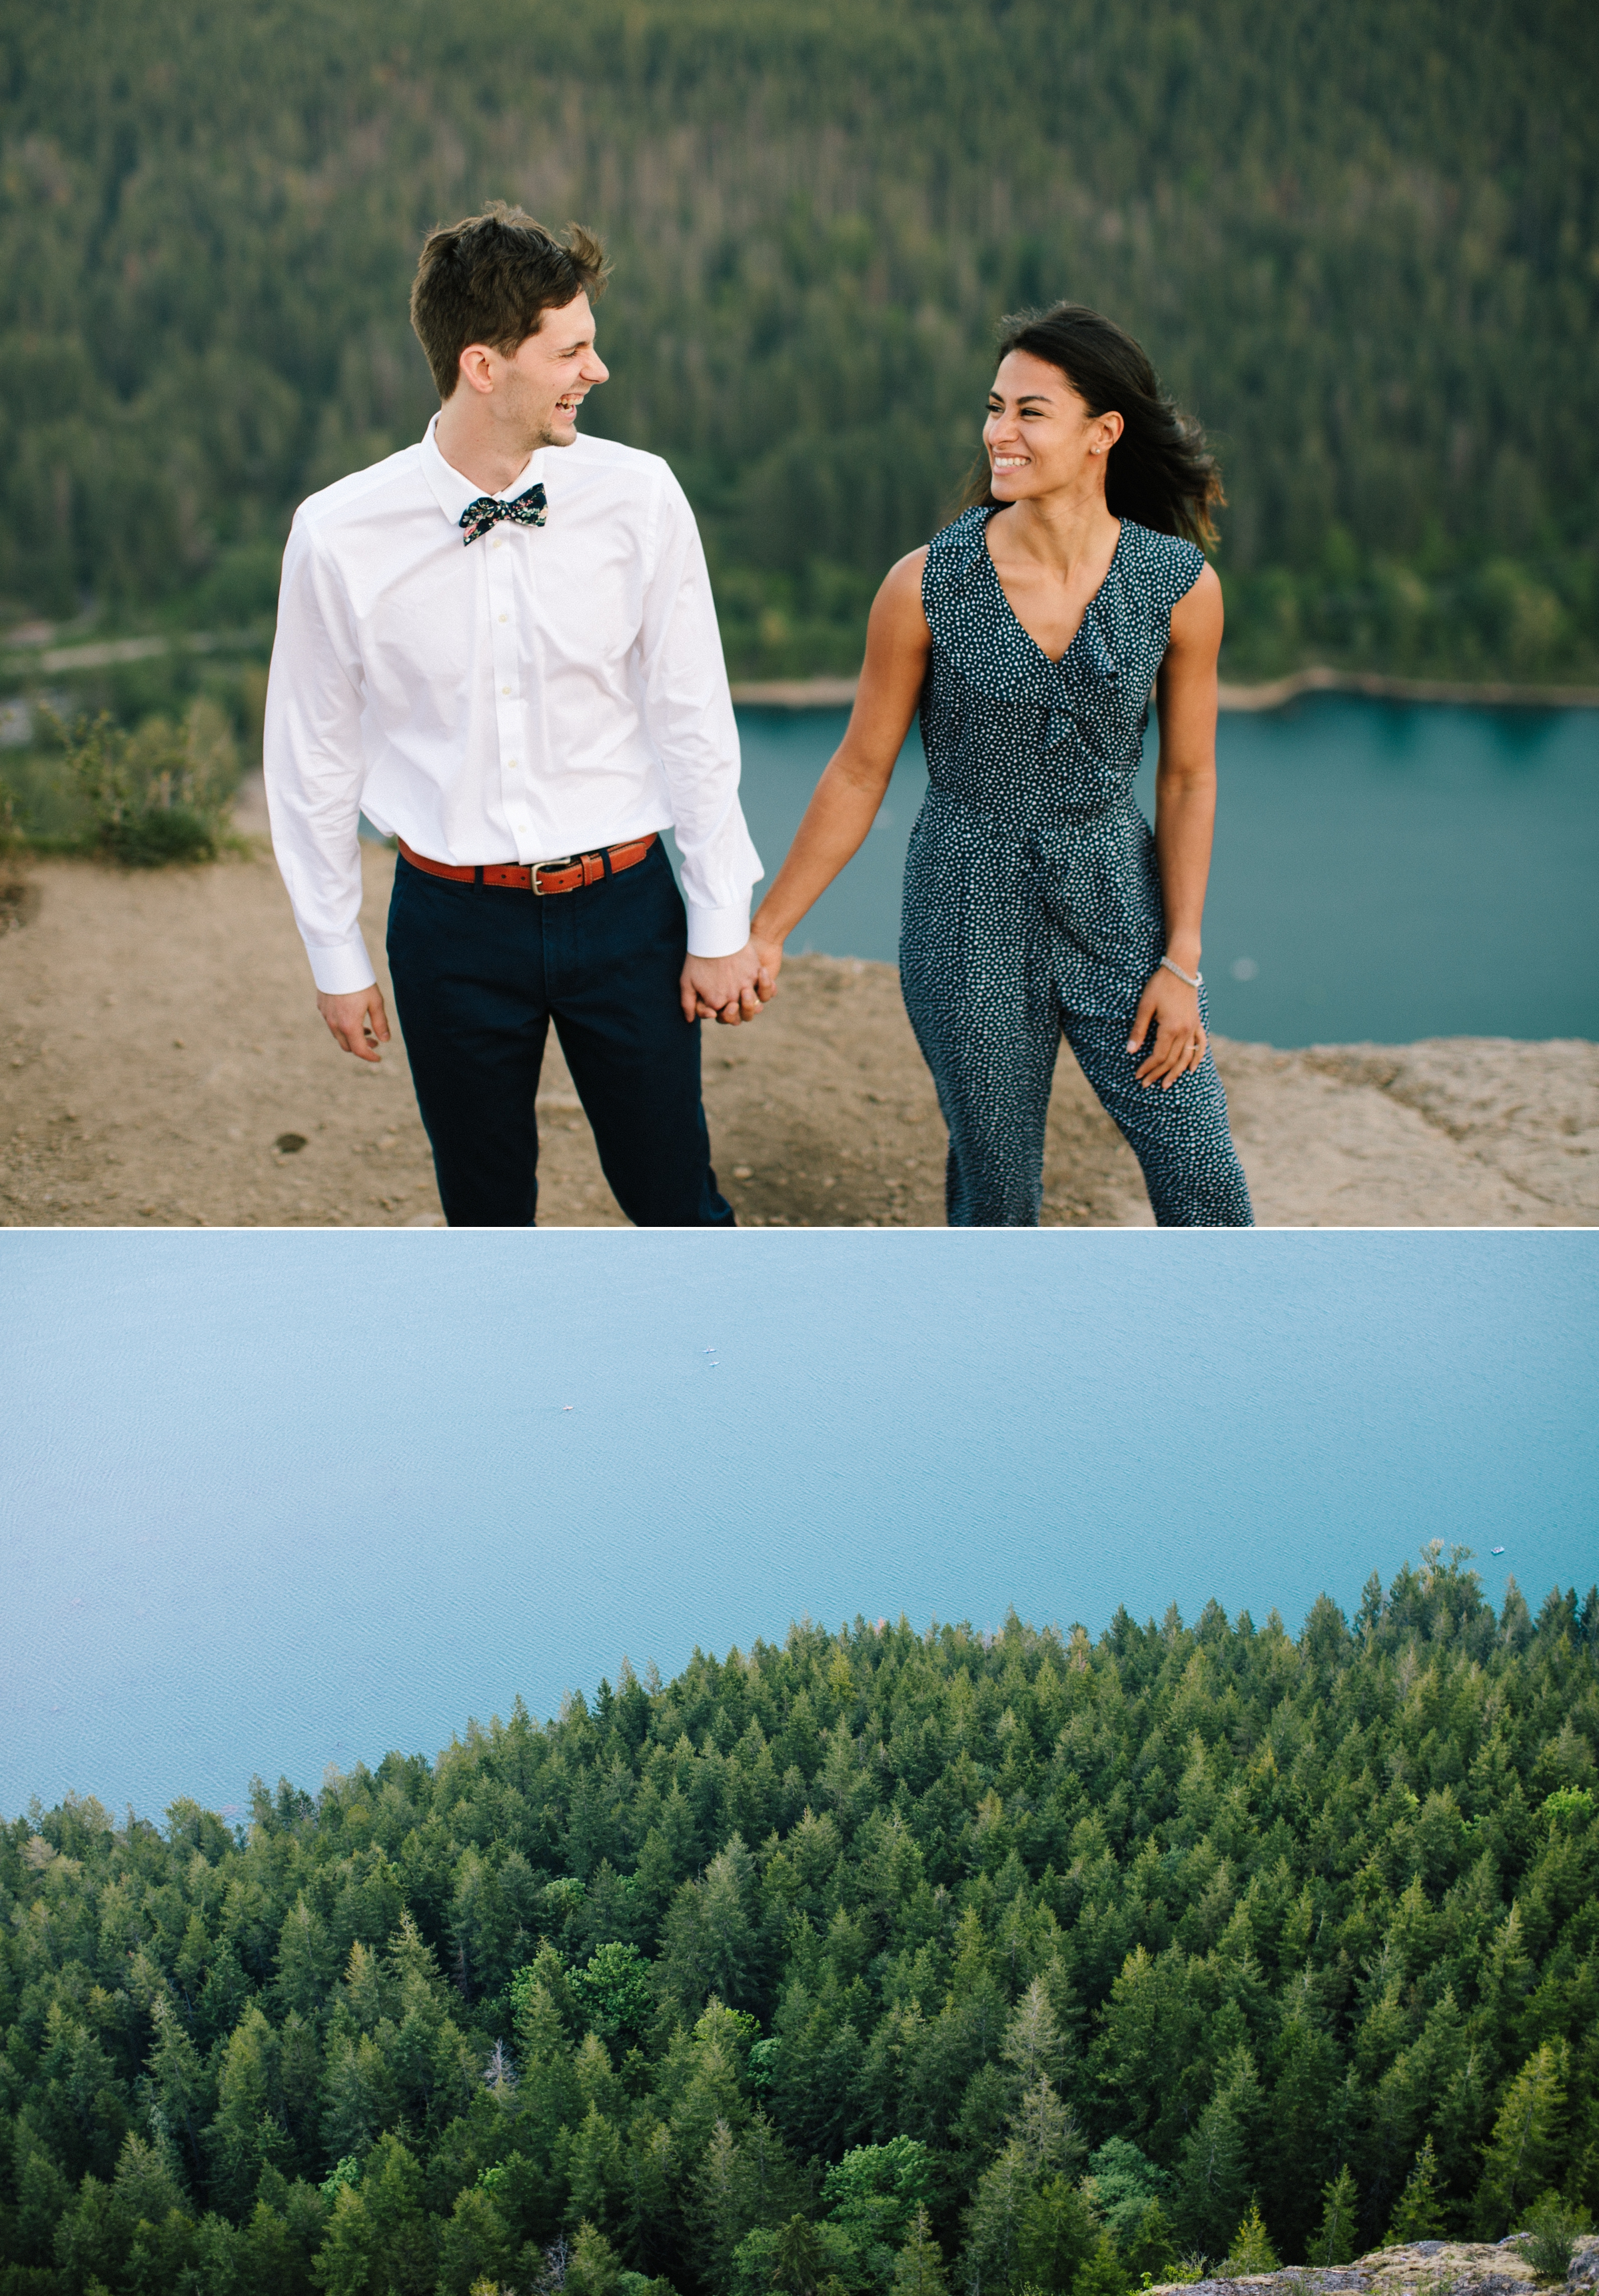 adventure-mountain-top-elopement-photographer-pnw-seattle-washington-wedding-engagement-hike-photography-catie-bergman_0030.jpg